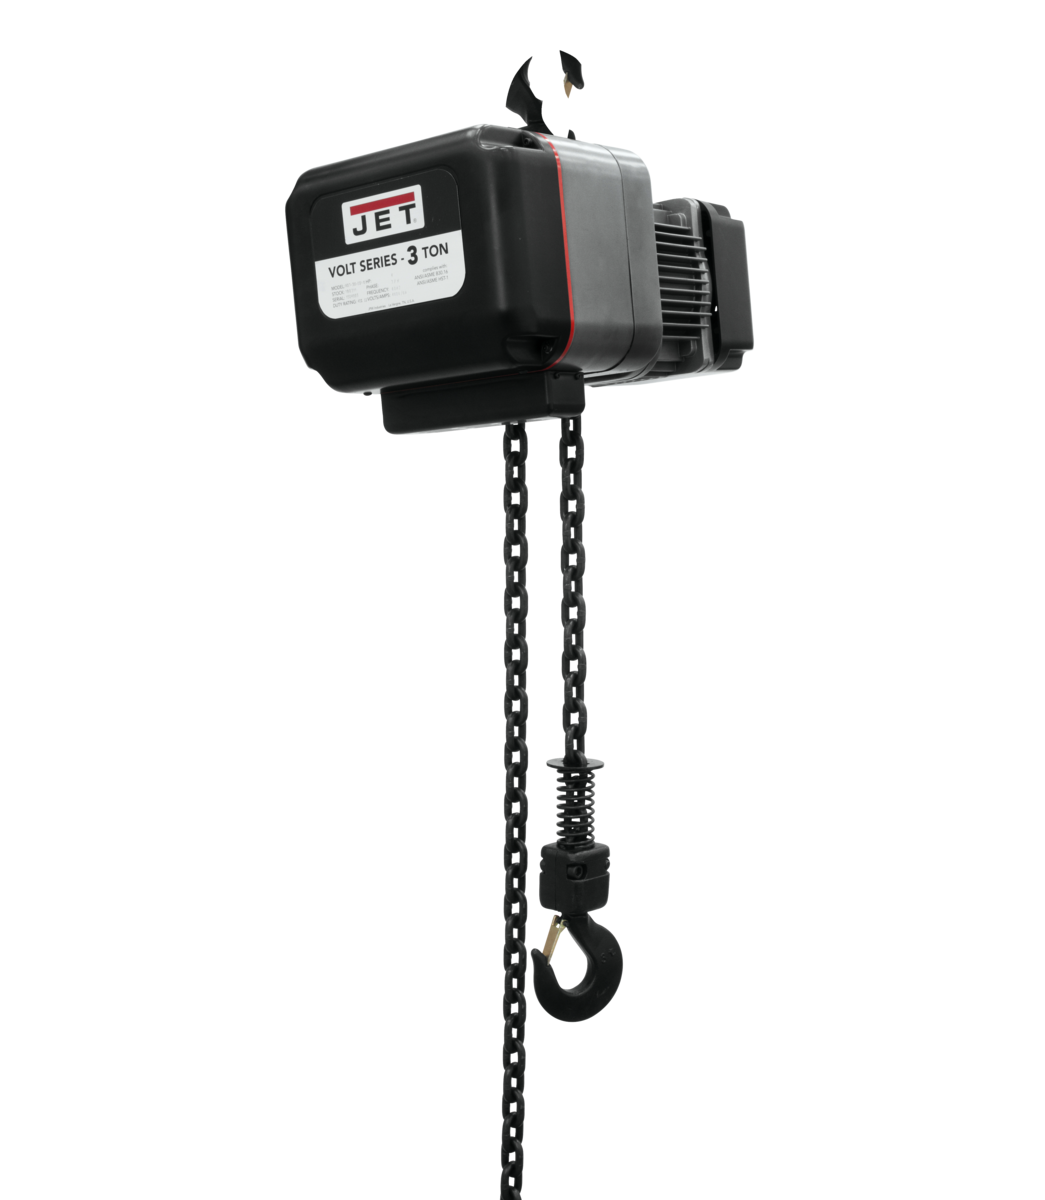 VOLT 3T VARIABLE-SPEED ELECTRIC HOIST  3PH 230V 30' LIFT